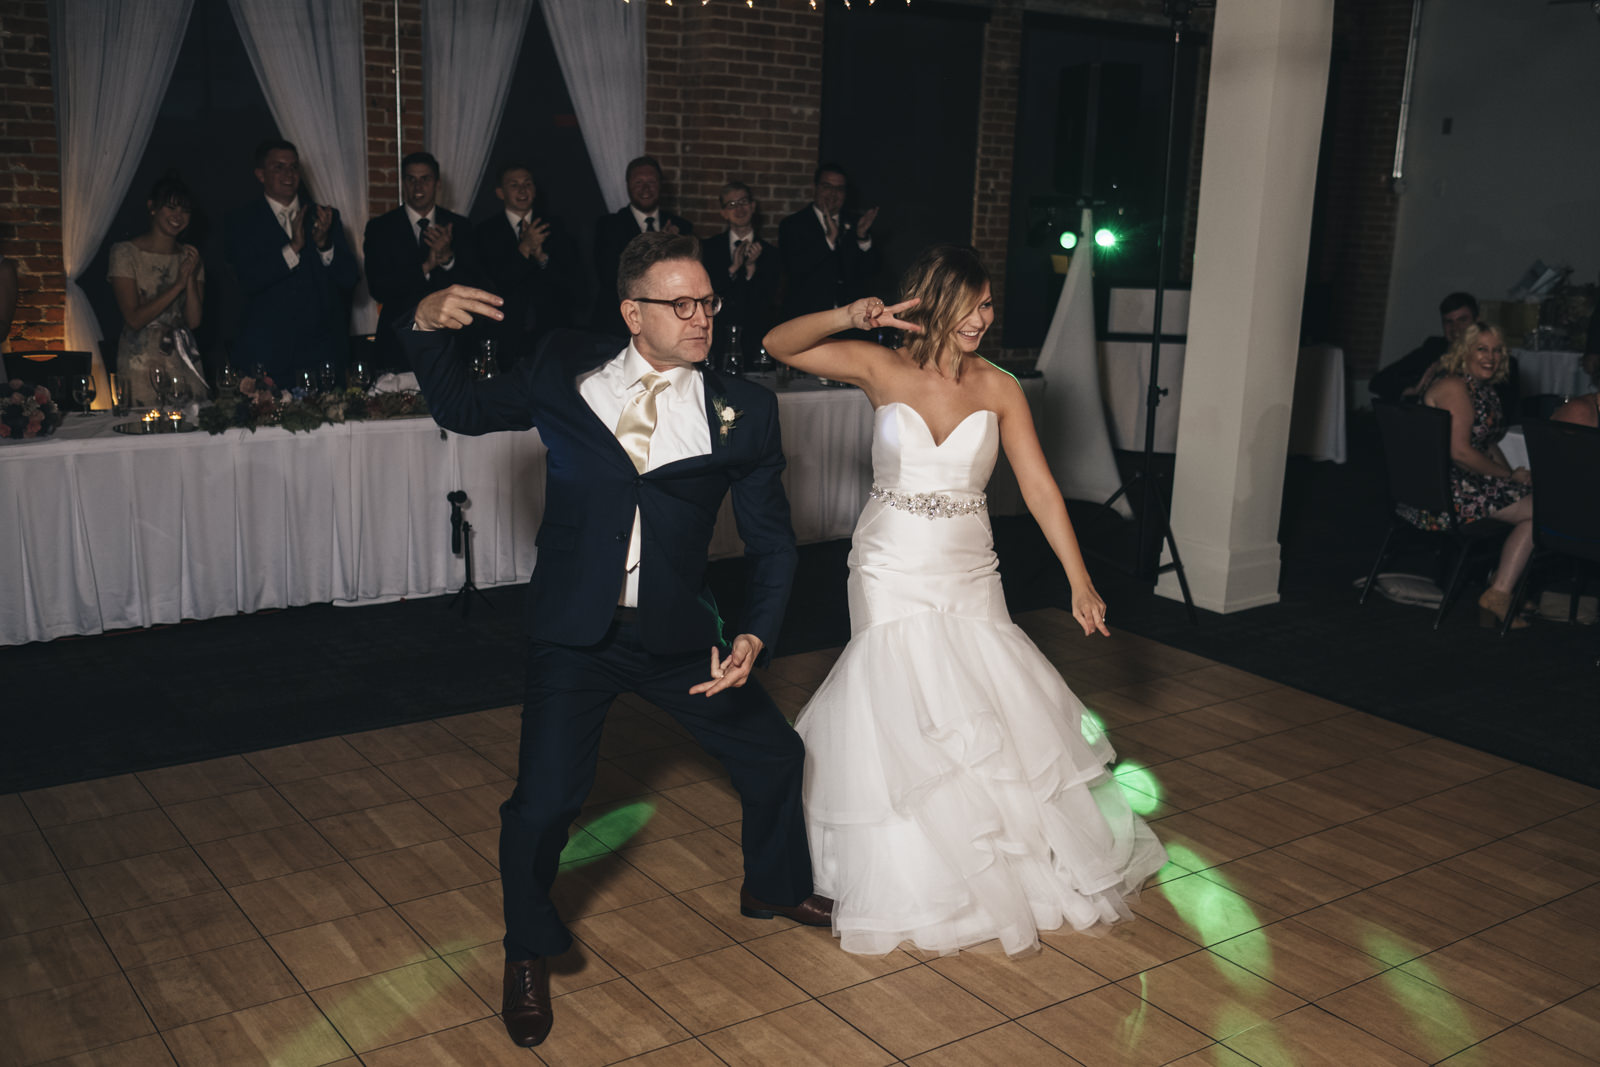 Bride and her father do a fun dance at wedding reception.